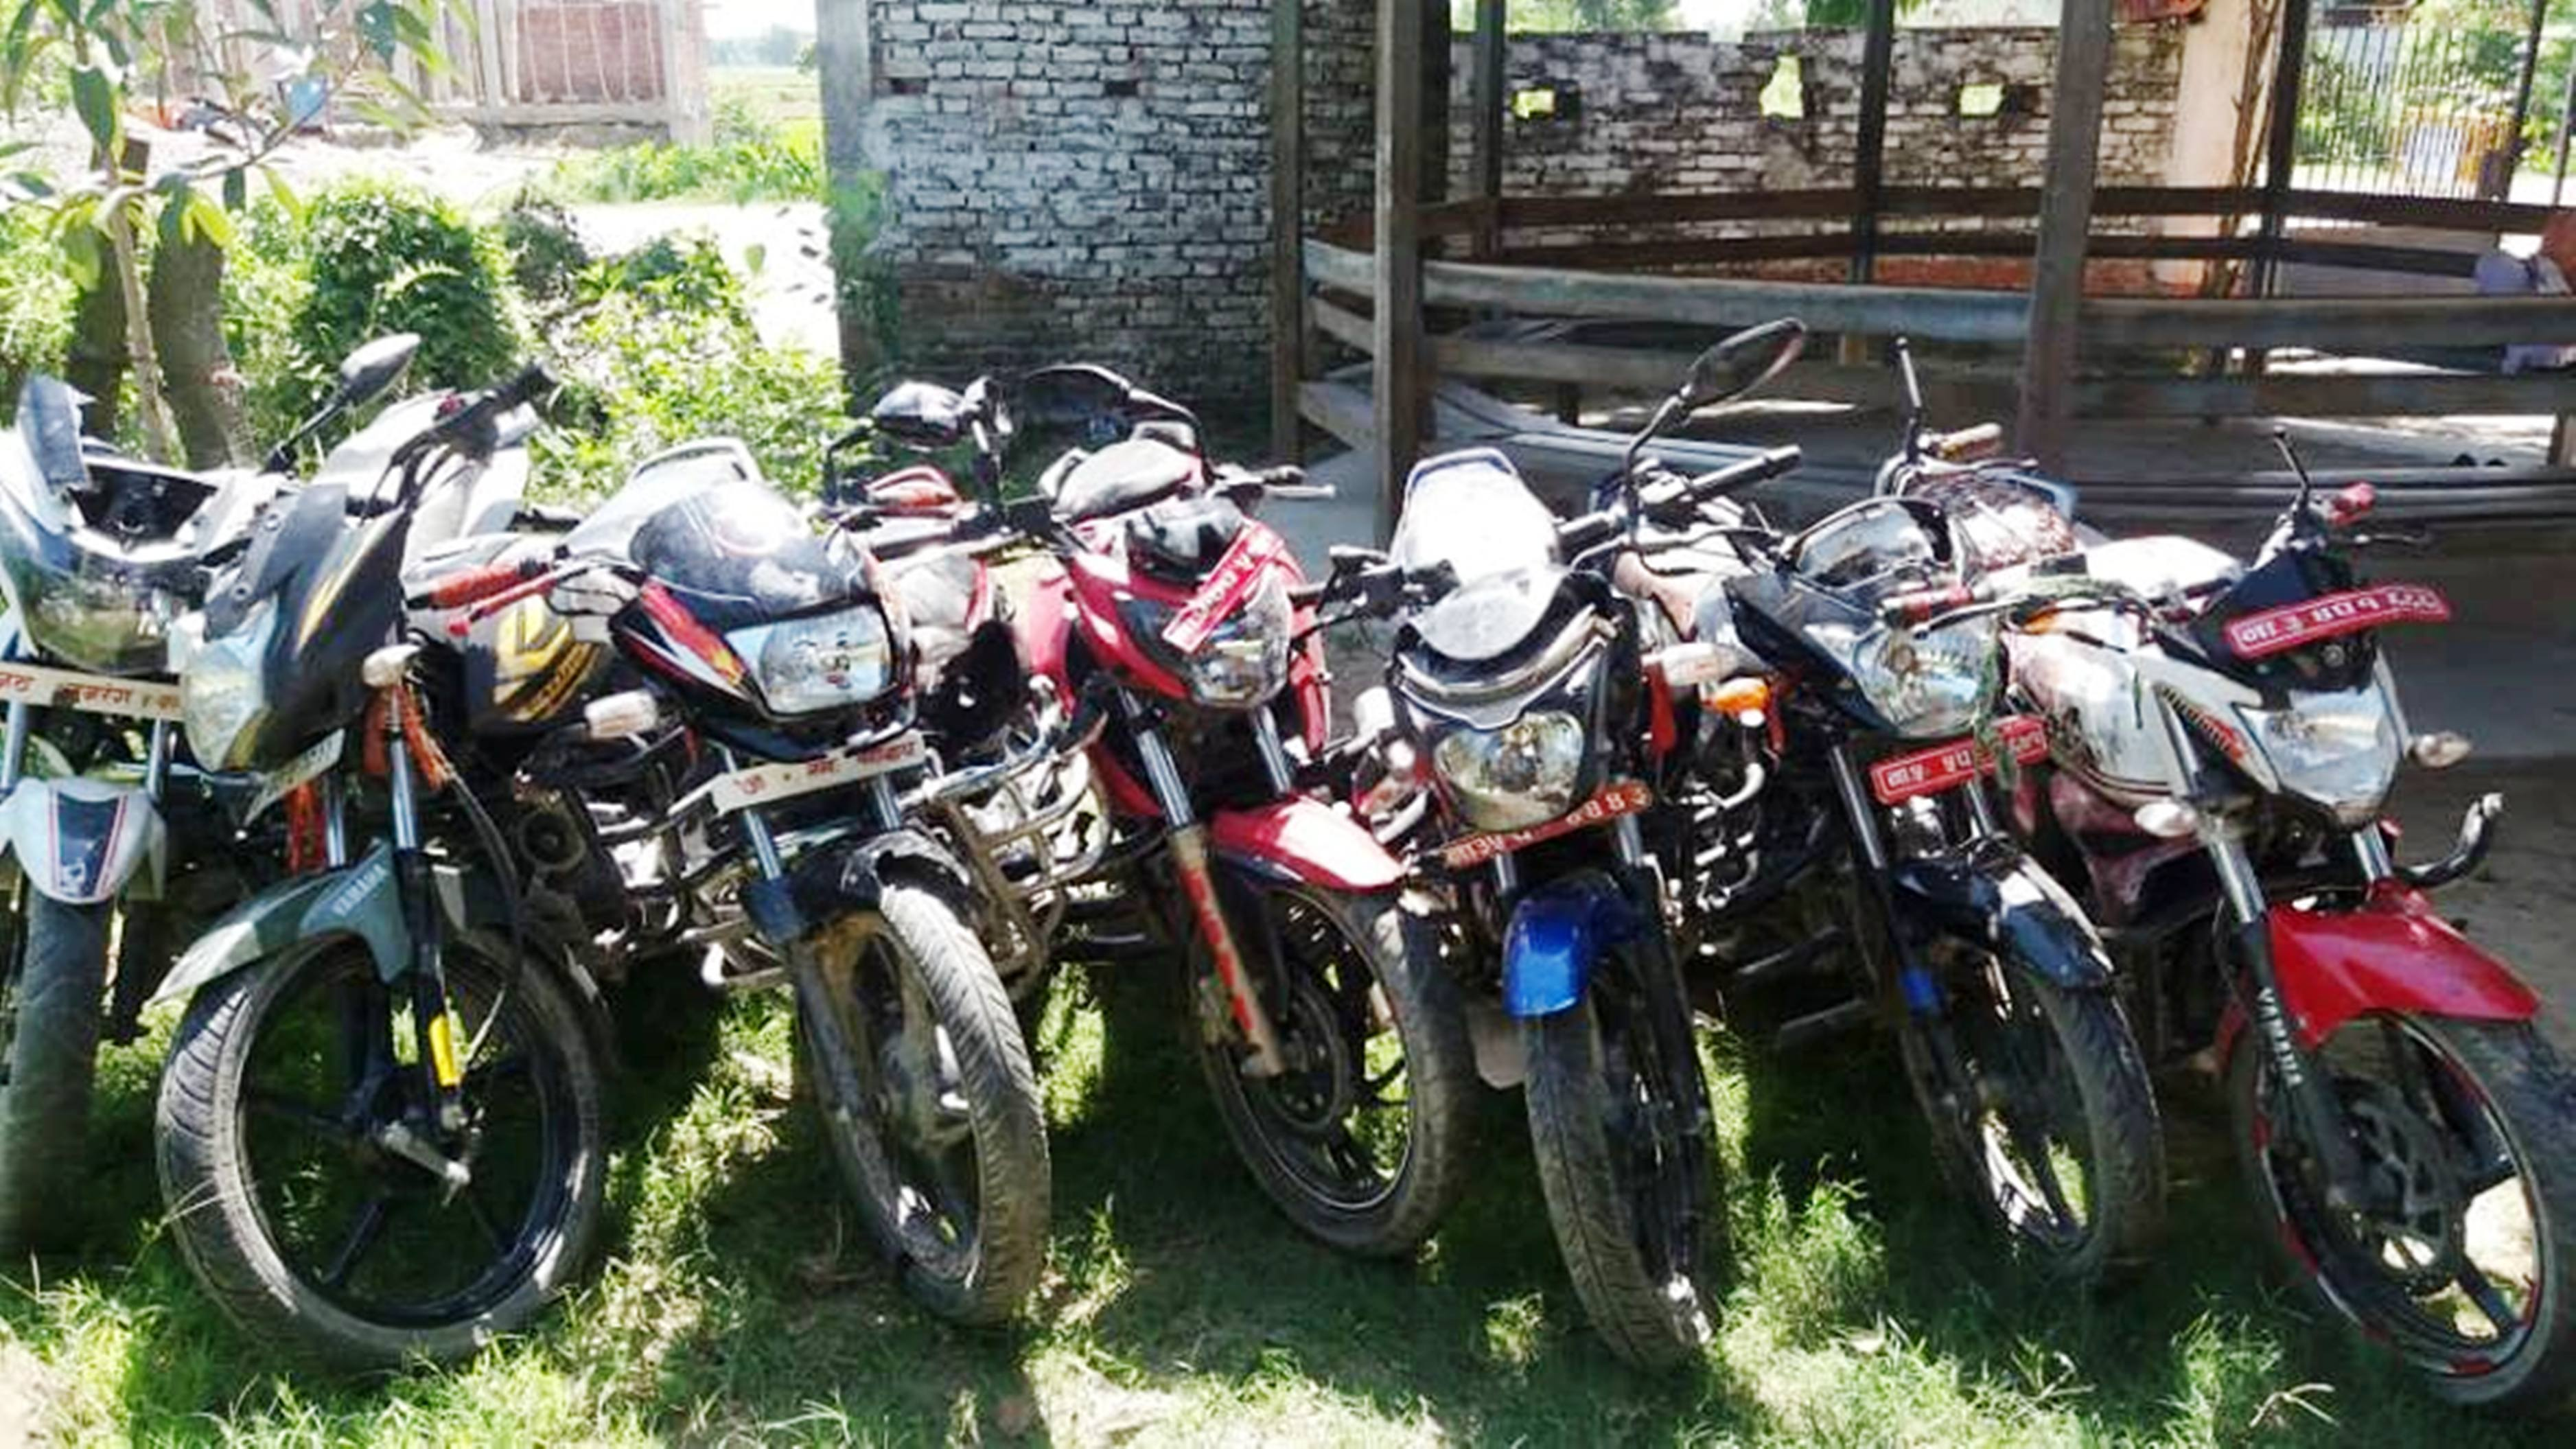 Motorbikes vandalised during a clash between locals are seen at Area Police Office, Garuda, on July 20, 2018. Photo: Prabhat Jha